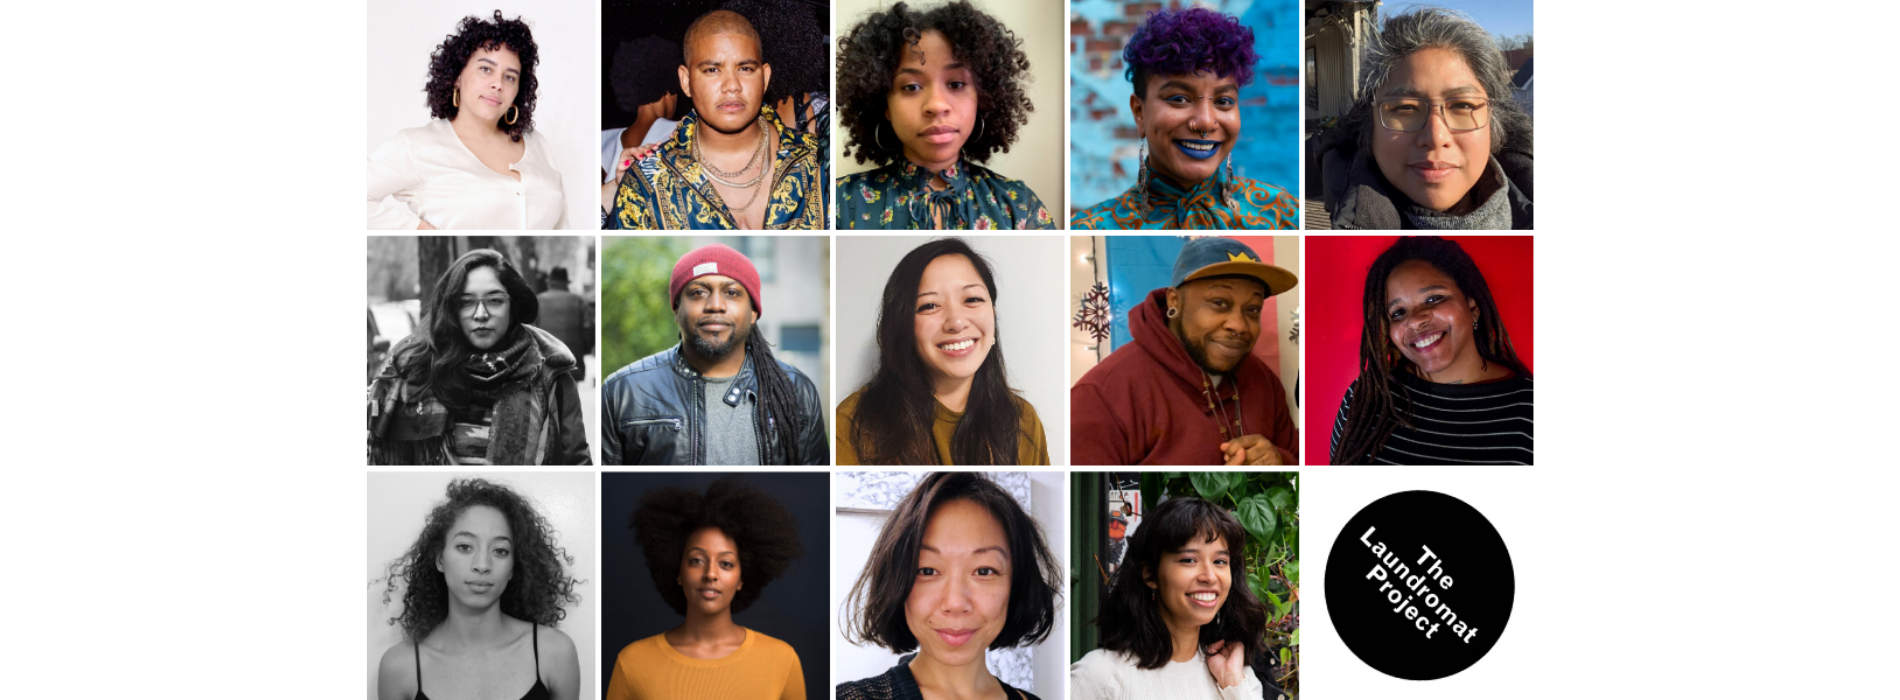 Announcing The 2020 Create Change Cohort